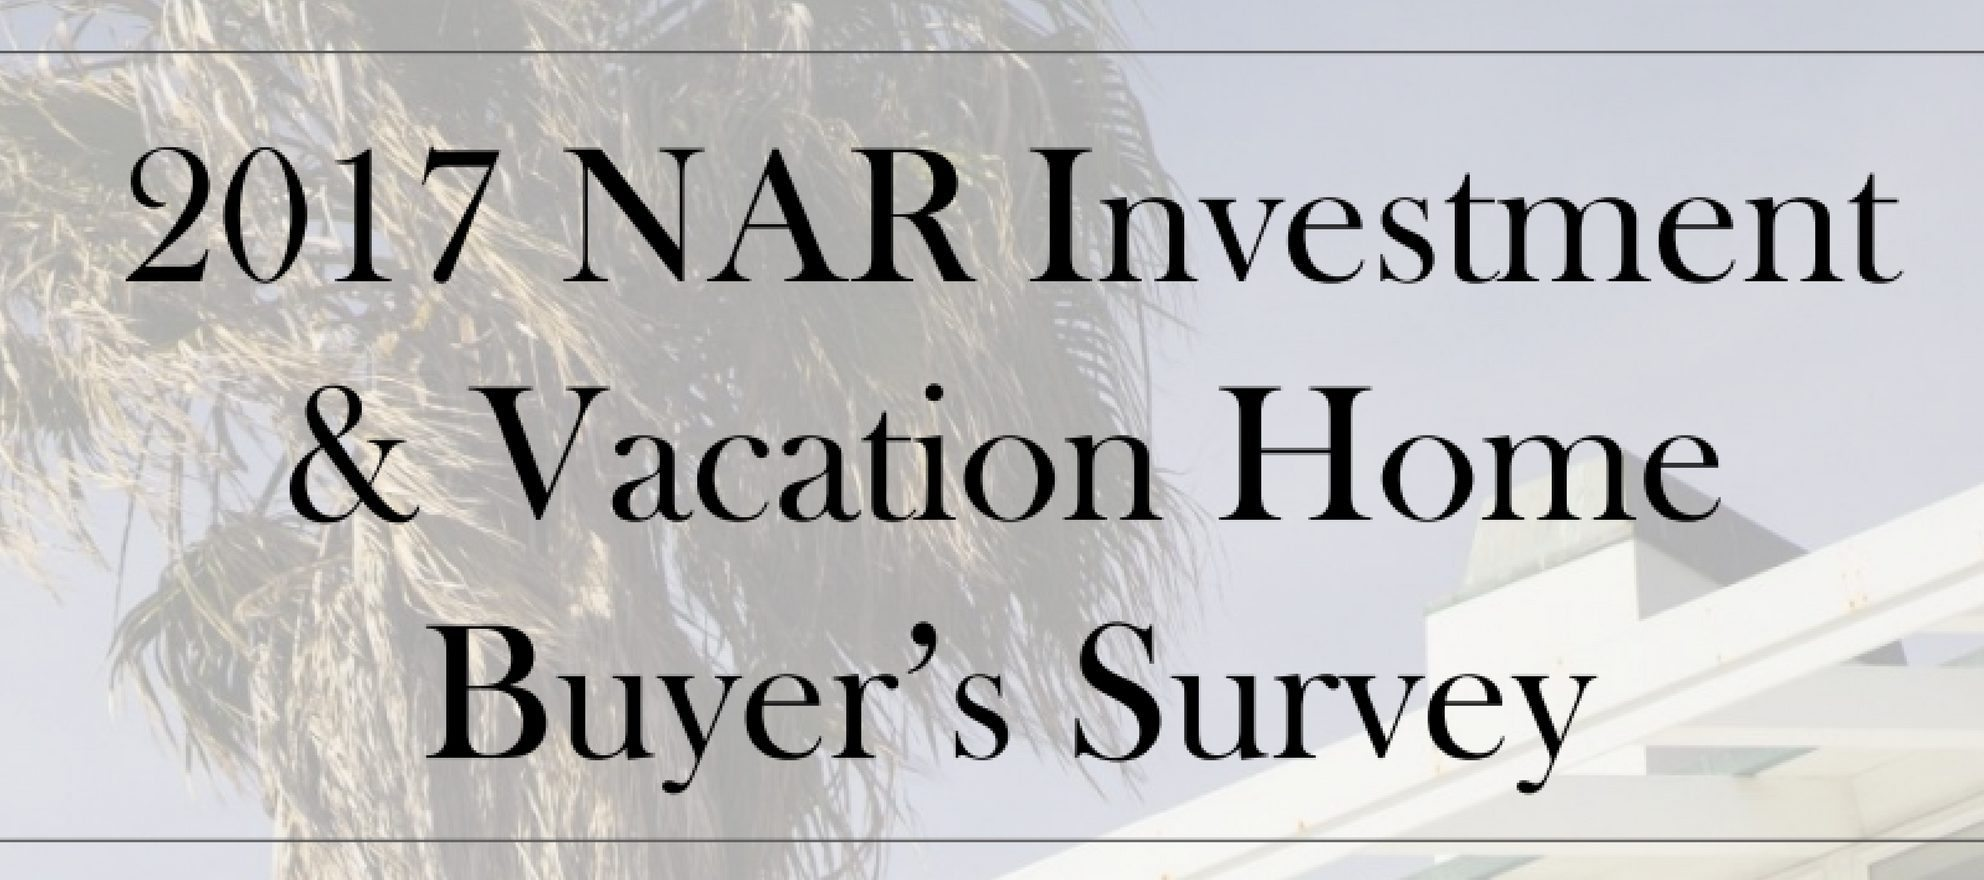 NAR vacation home sales 2017